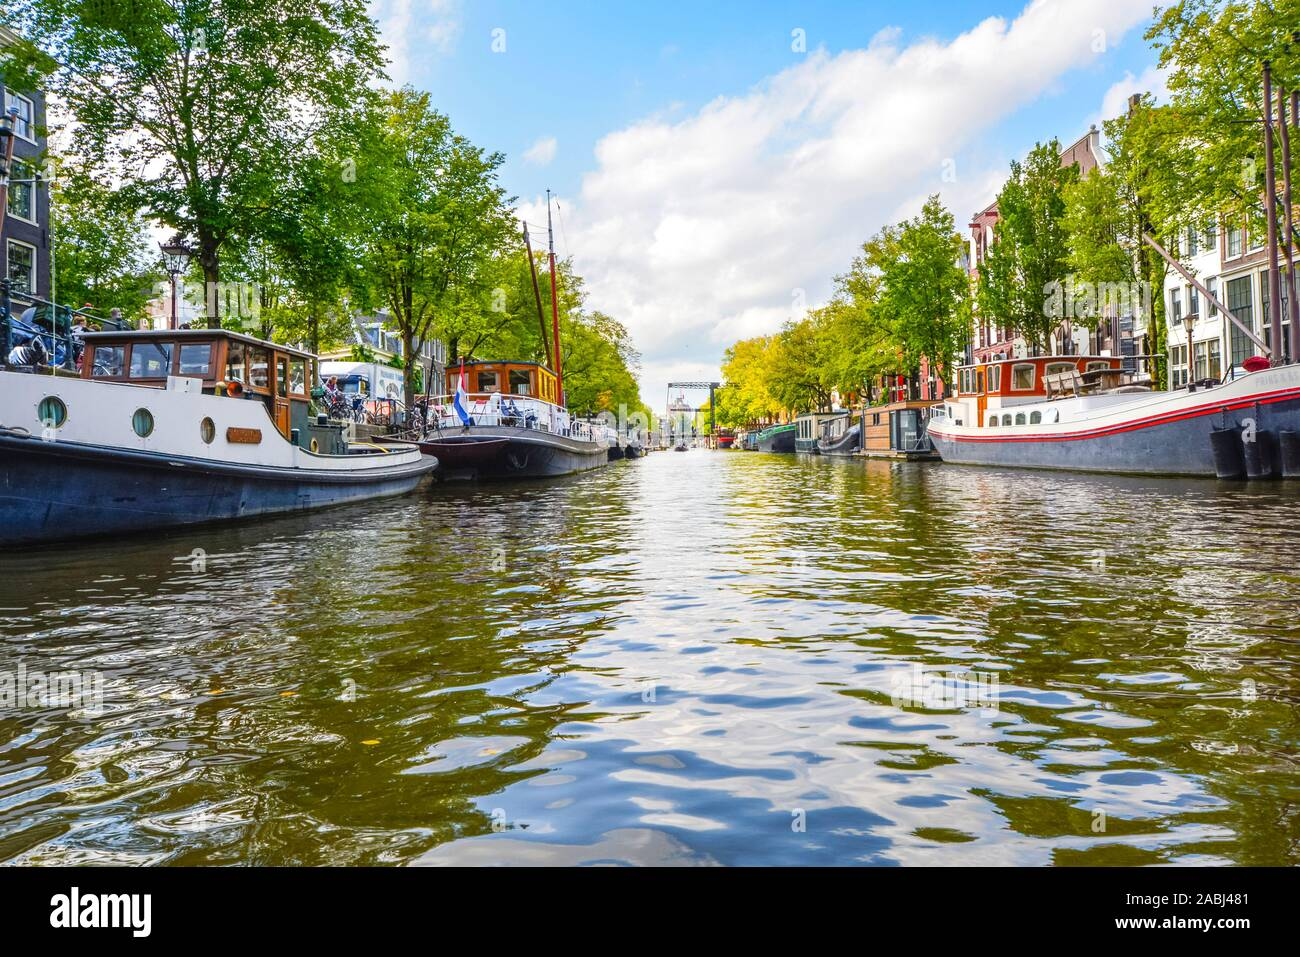 Water level view from a tour boat in Autumn of a residential canal filled with boats and houseboats in Amsterdam, Netherlands. Stock Photo